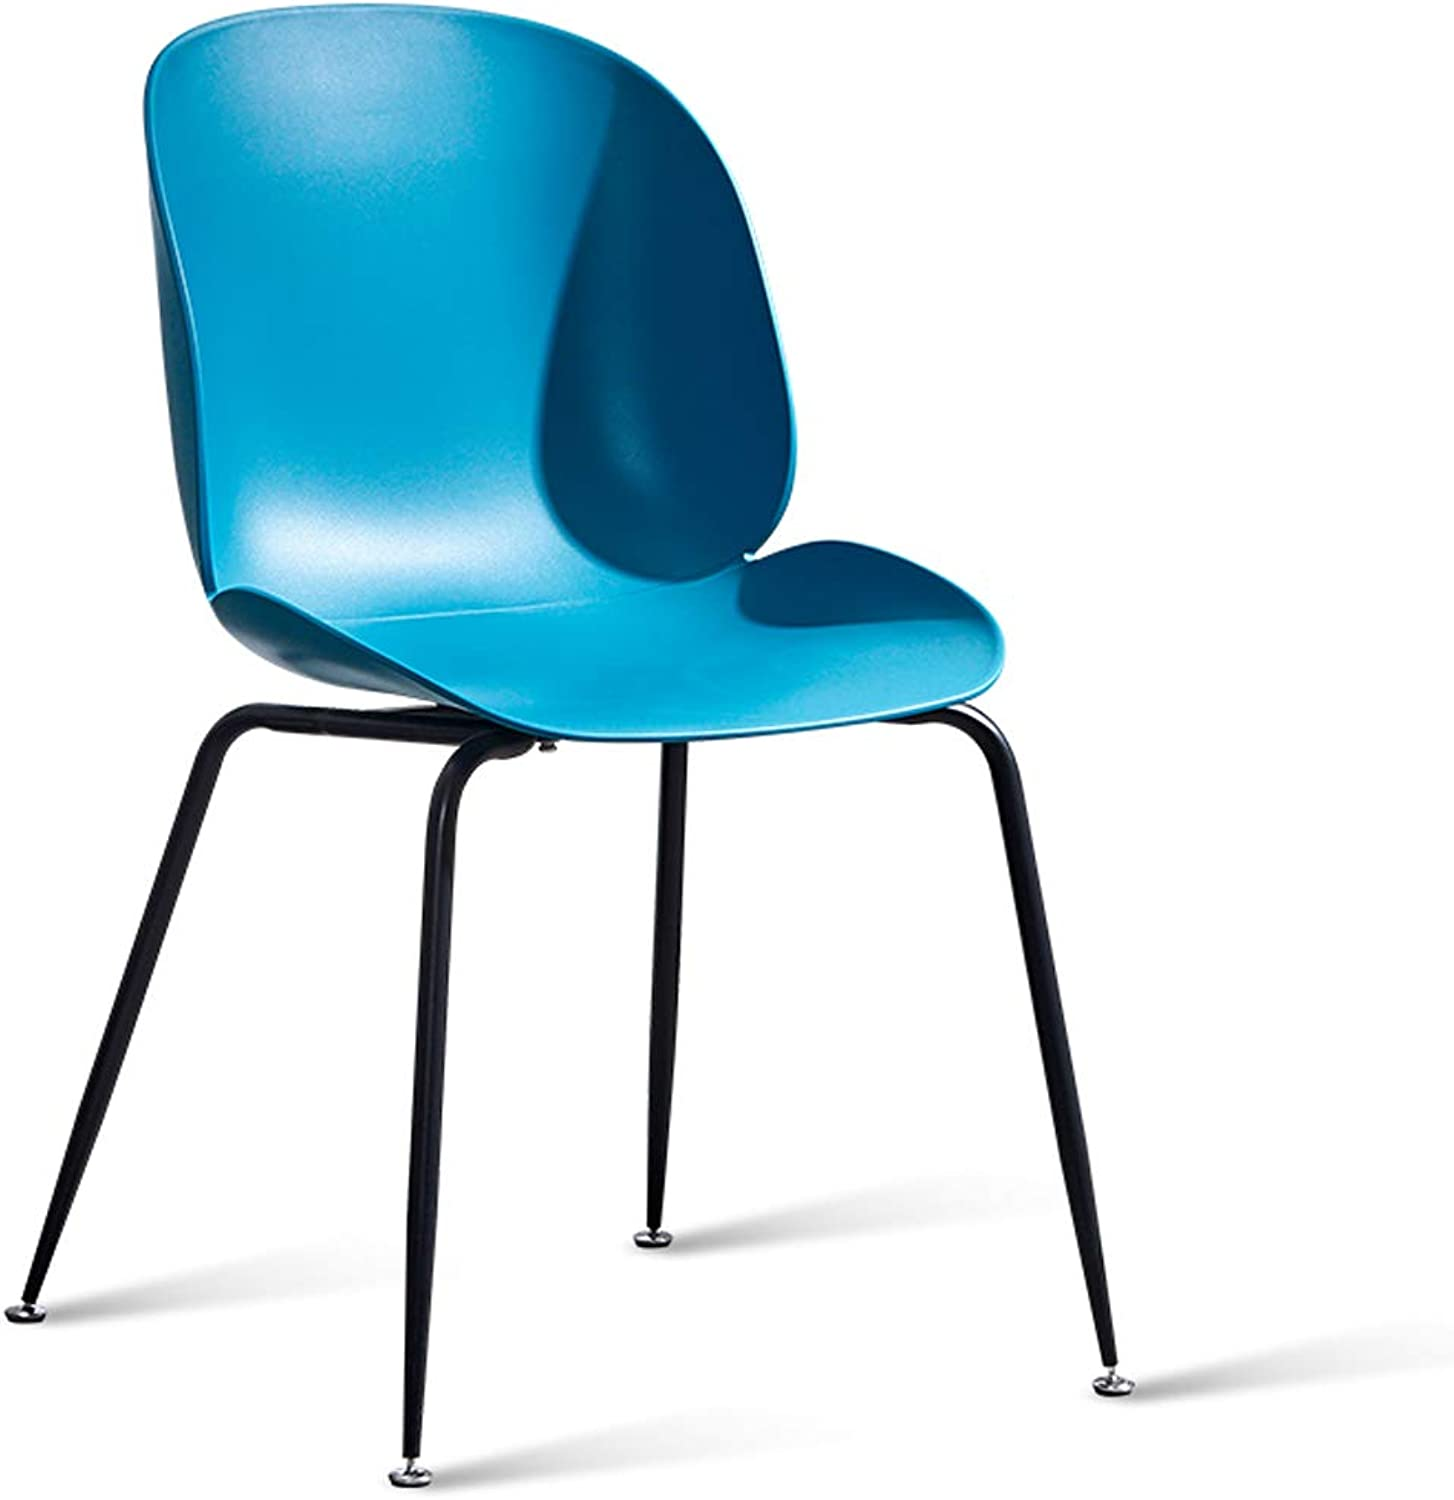 LRW Nordic Chairs, Modern Dining Chairs, Home Desks, Chairs, Leisure Backrest Stools, bluee